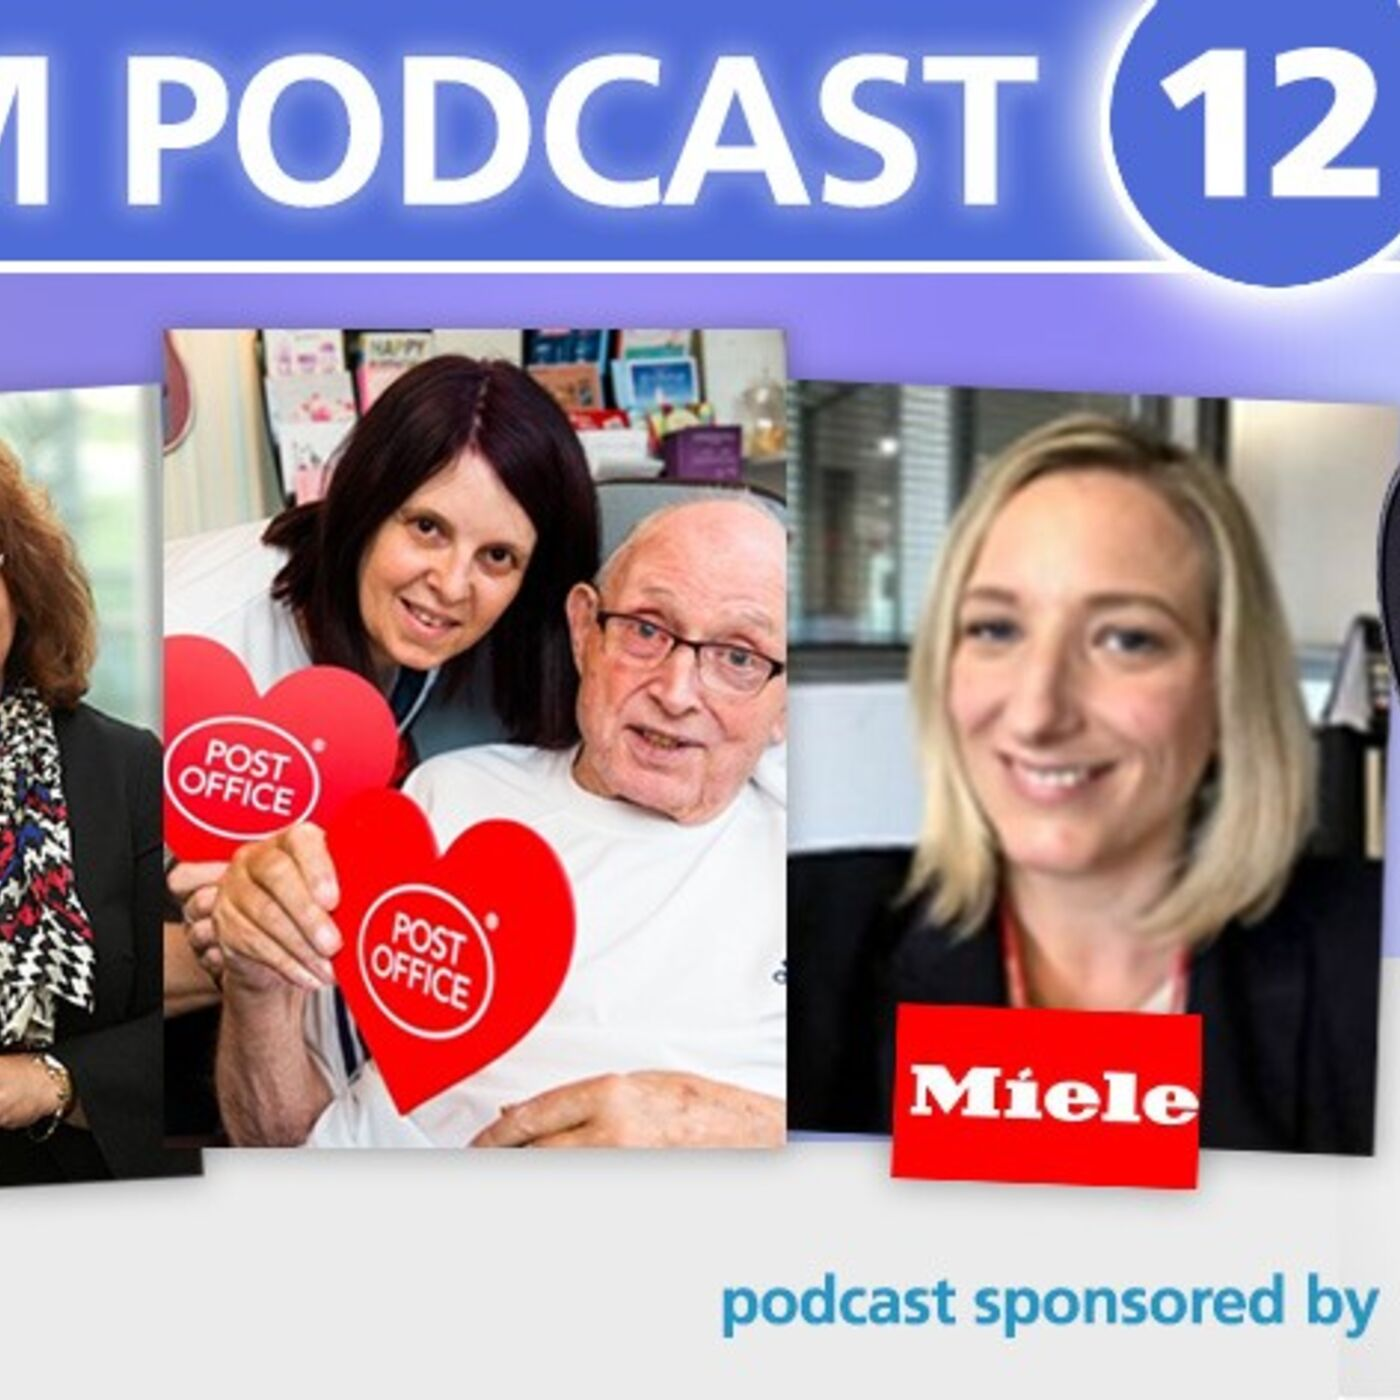 Care Home Management December podcast covering laundry, catering, in-home post offices and some politics